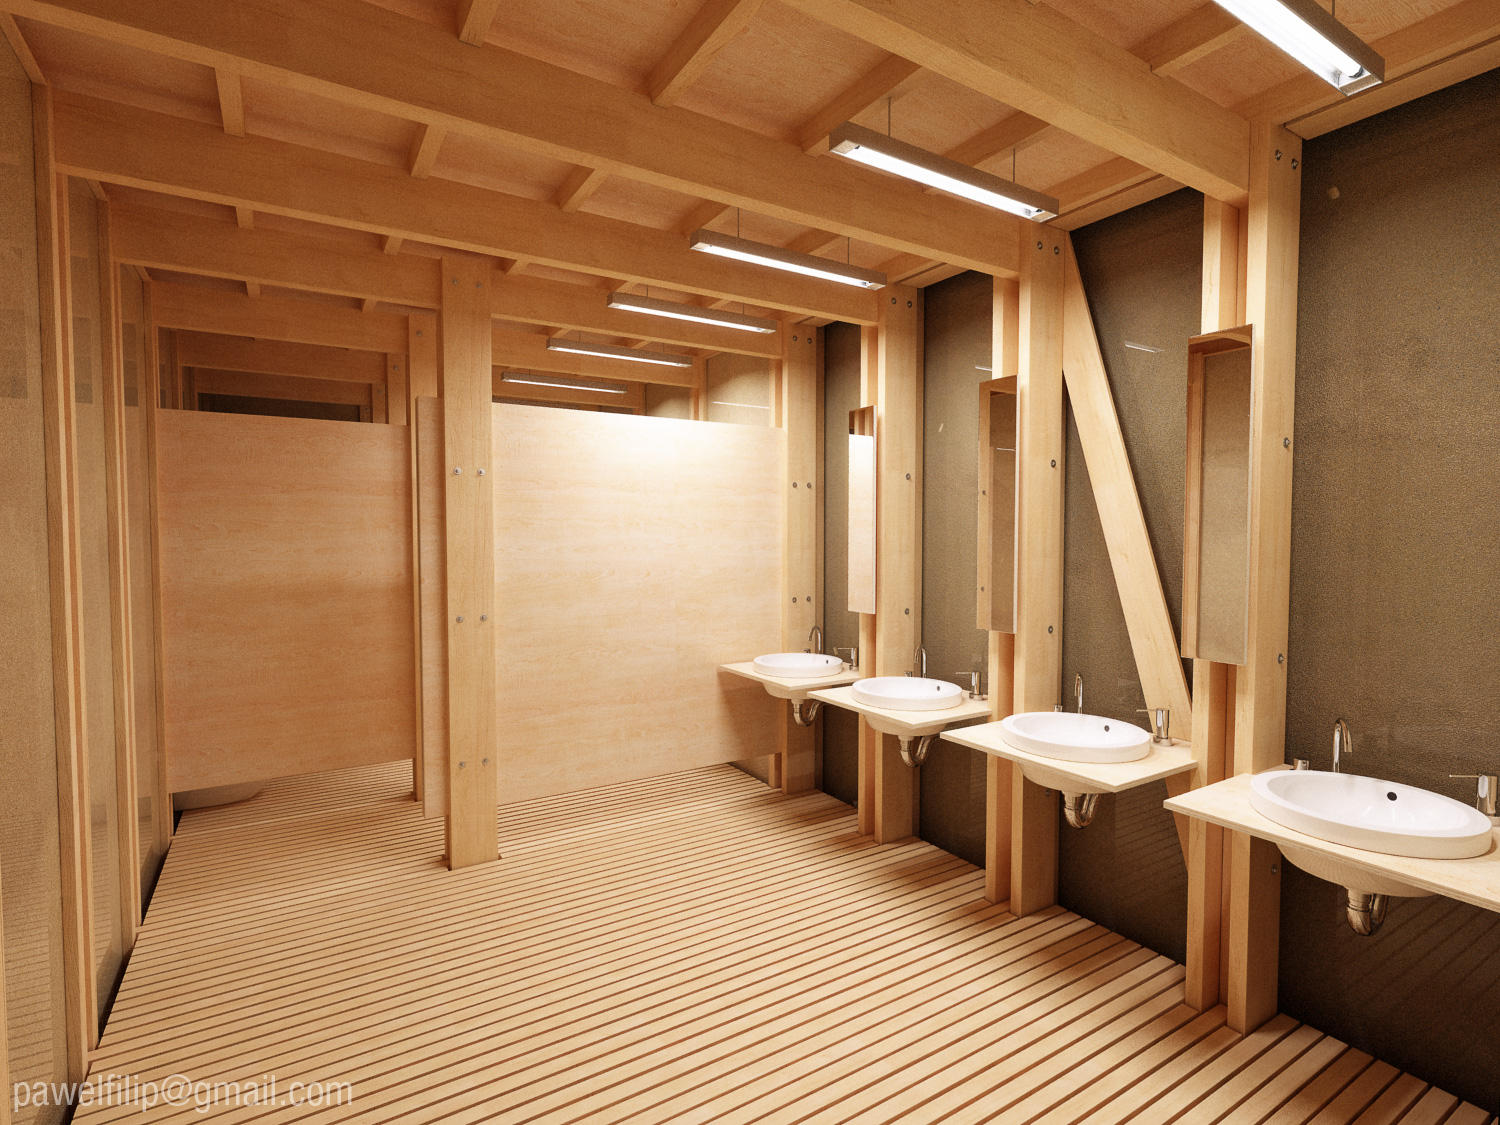 Public toilet interior night by zmoodel on deviantart for Home washroom